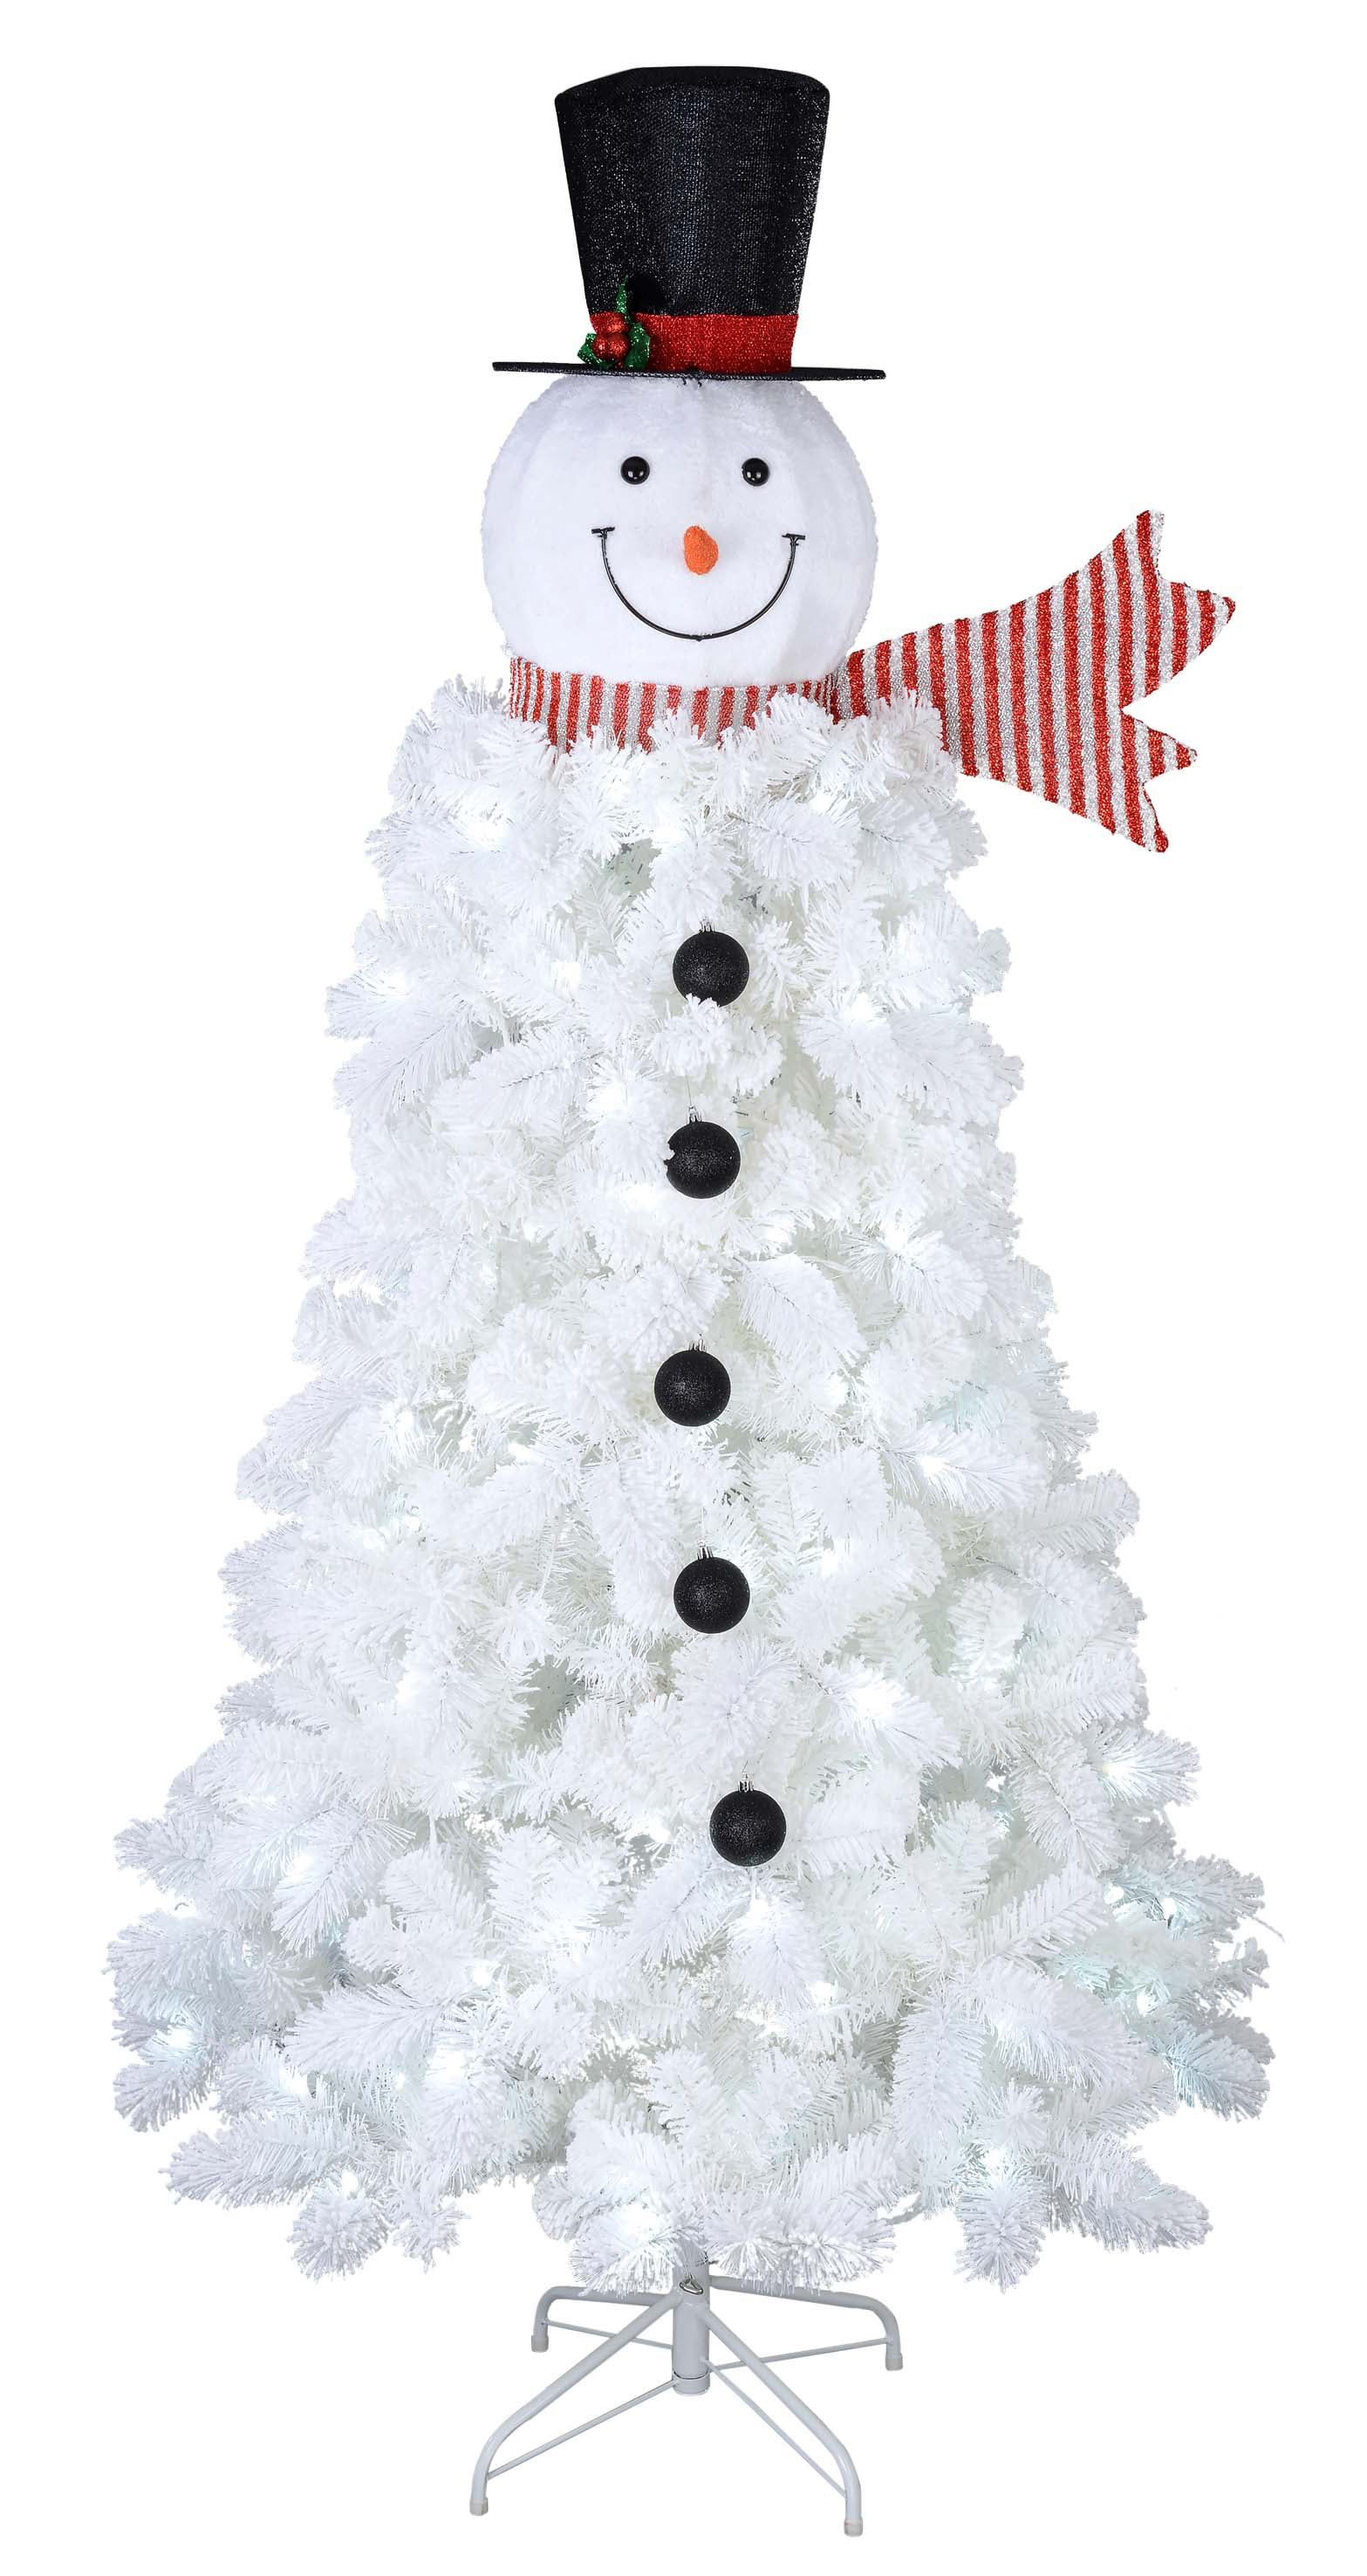 snowman christmas tree walmartcom - Walmart Christmas Decorations 2017